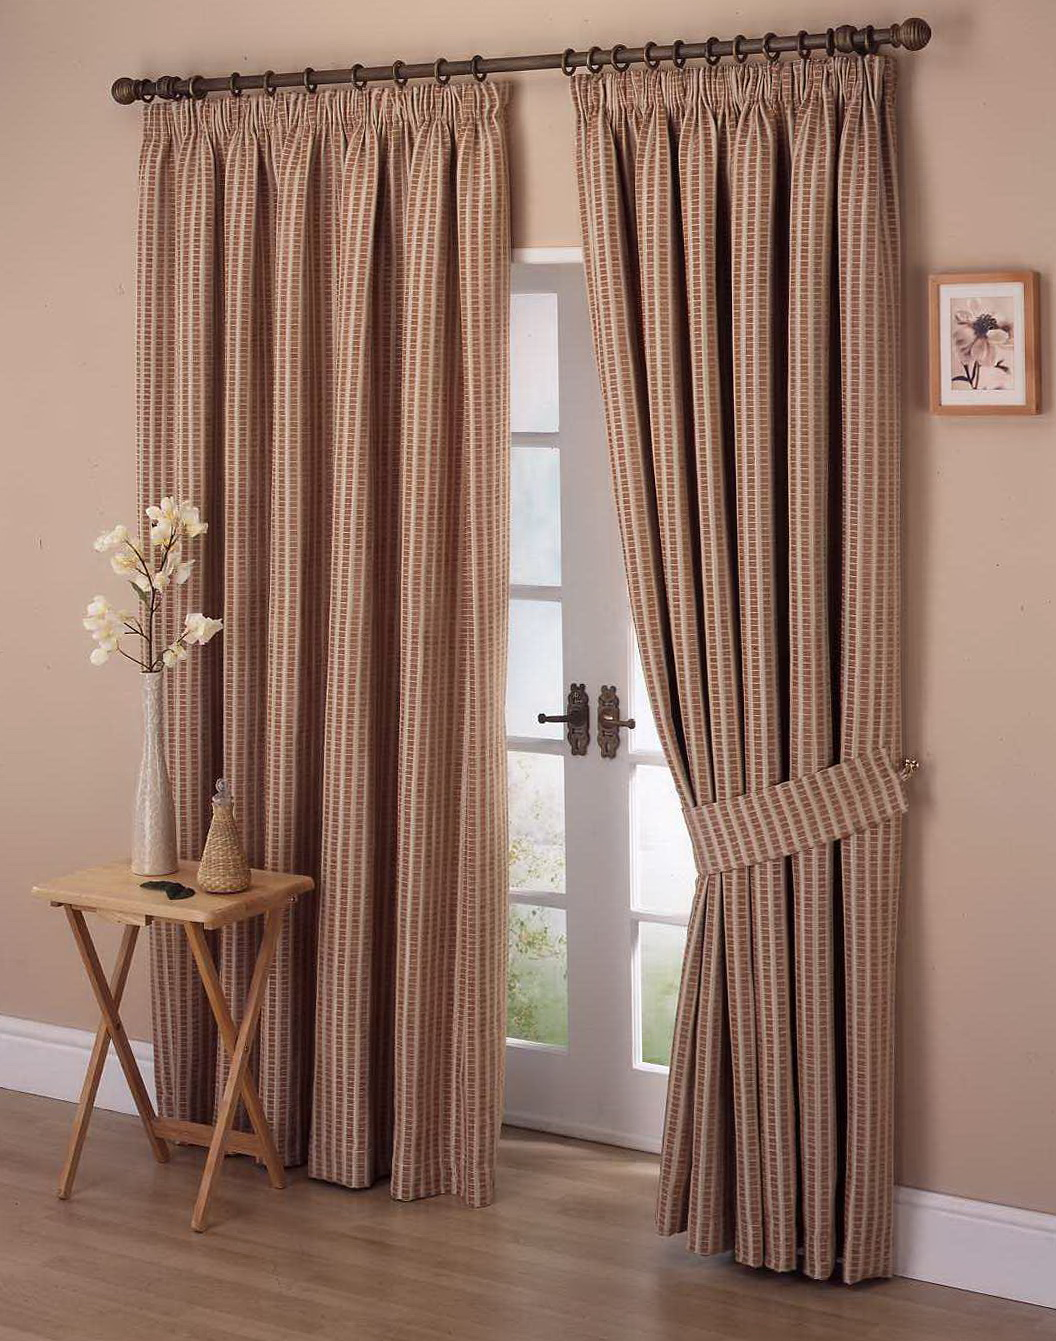 Curtain Decorating Ideas Pictures